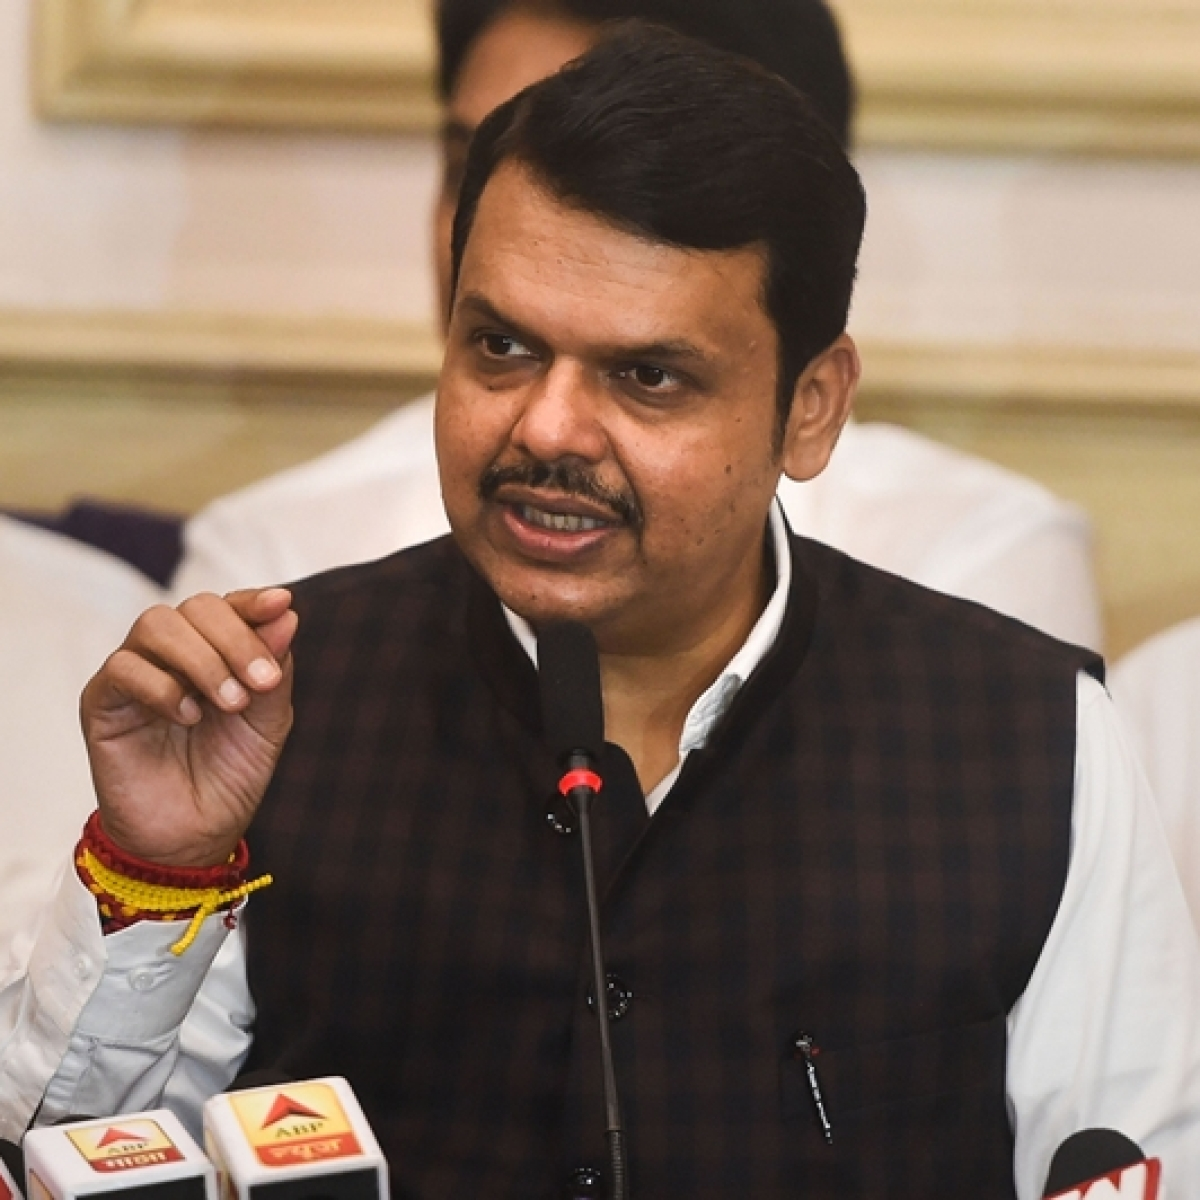 Confused state of mind: Saamana editorial slams Devendra Fadnavis after he claims differences in Maha Vikas Aghadi